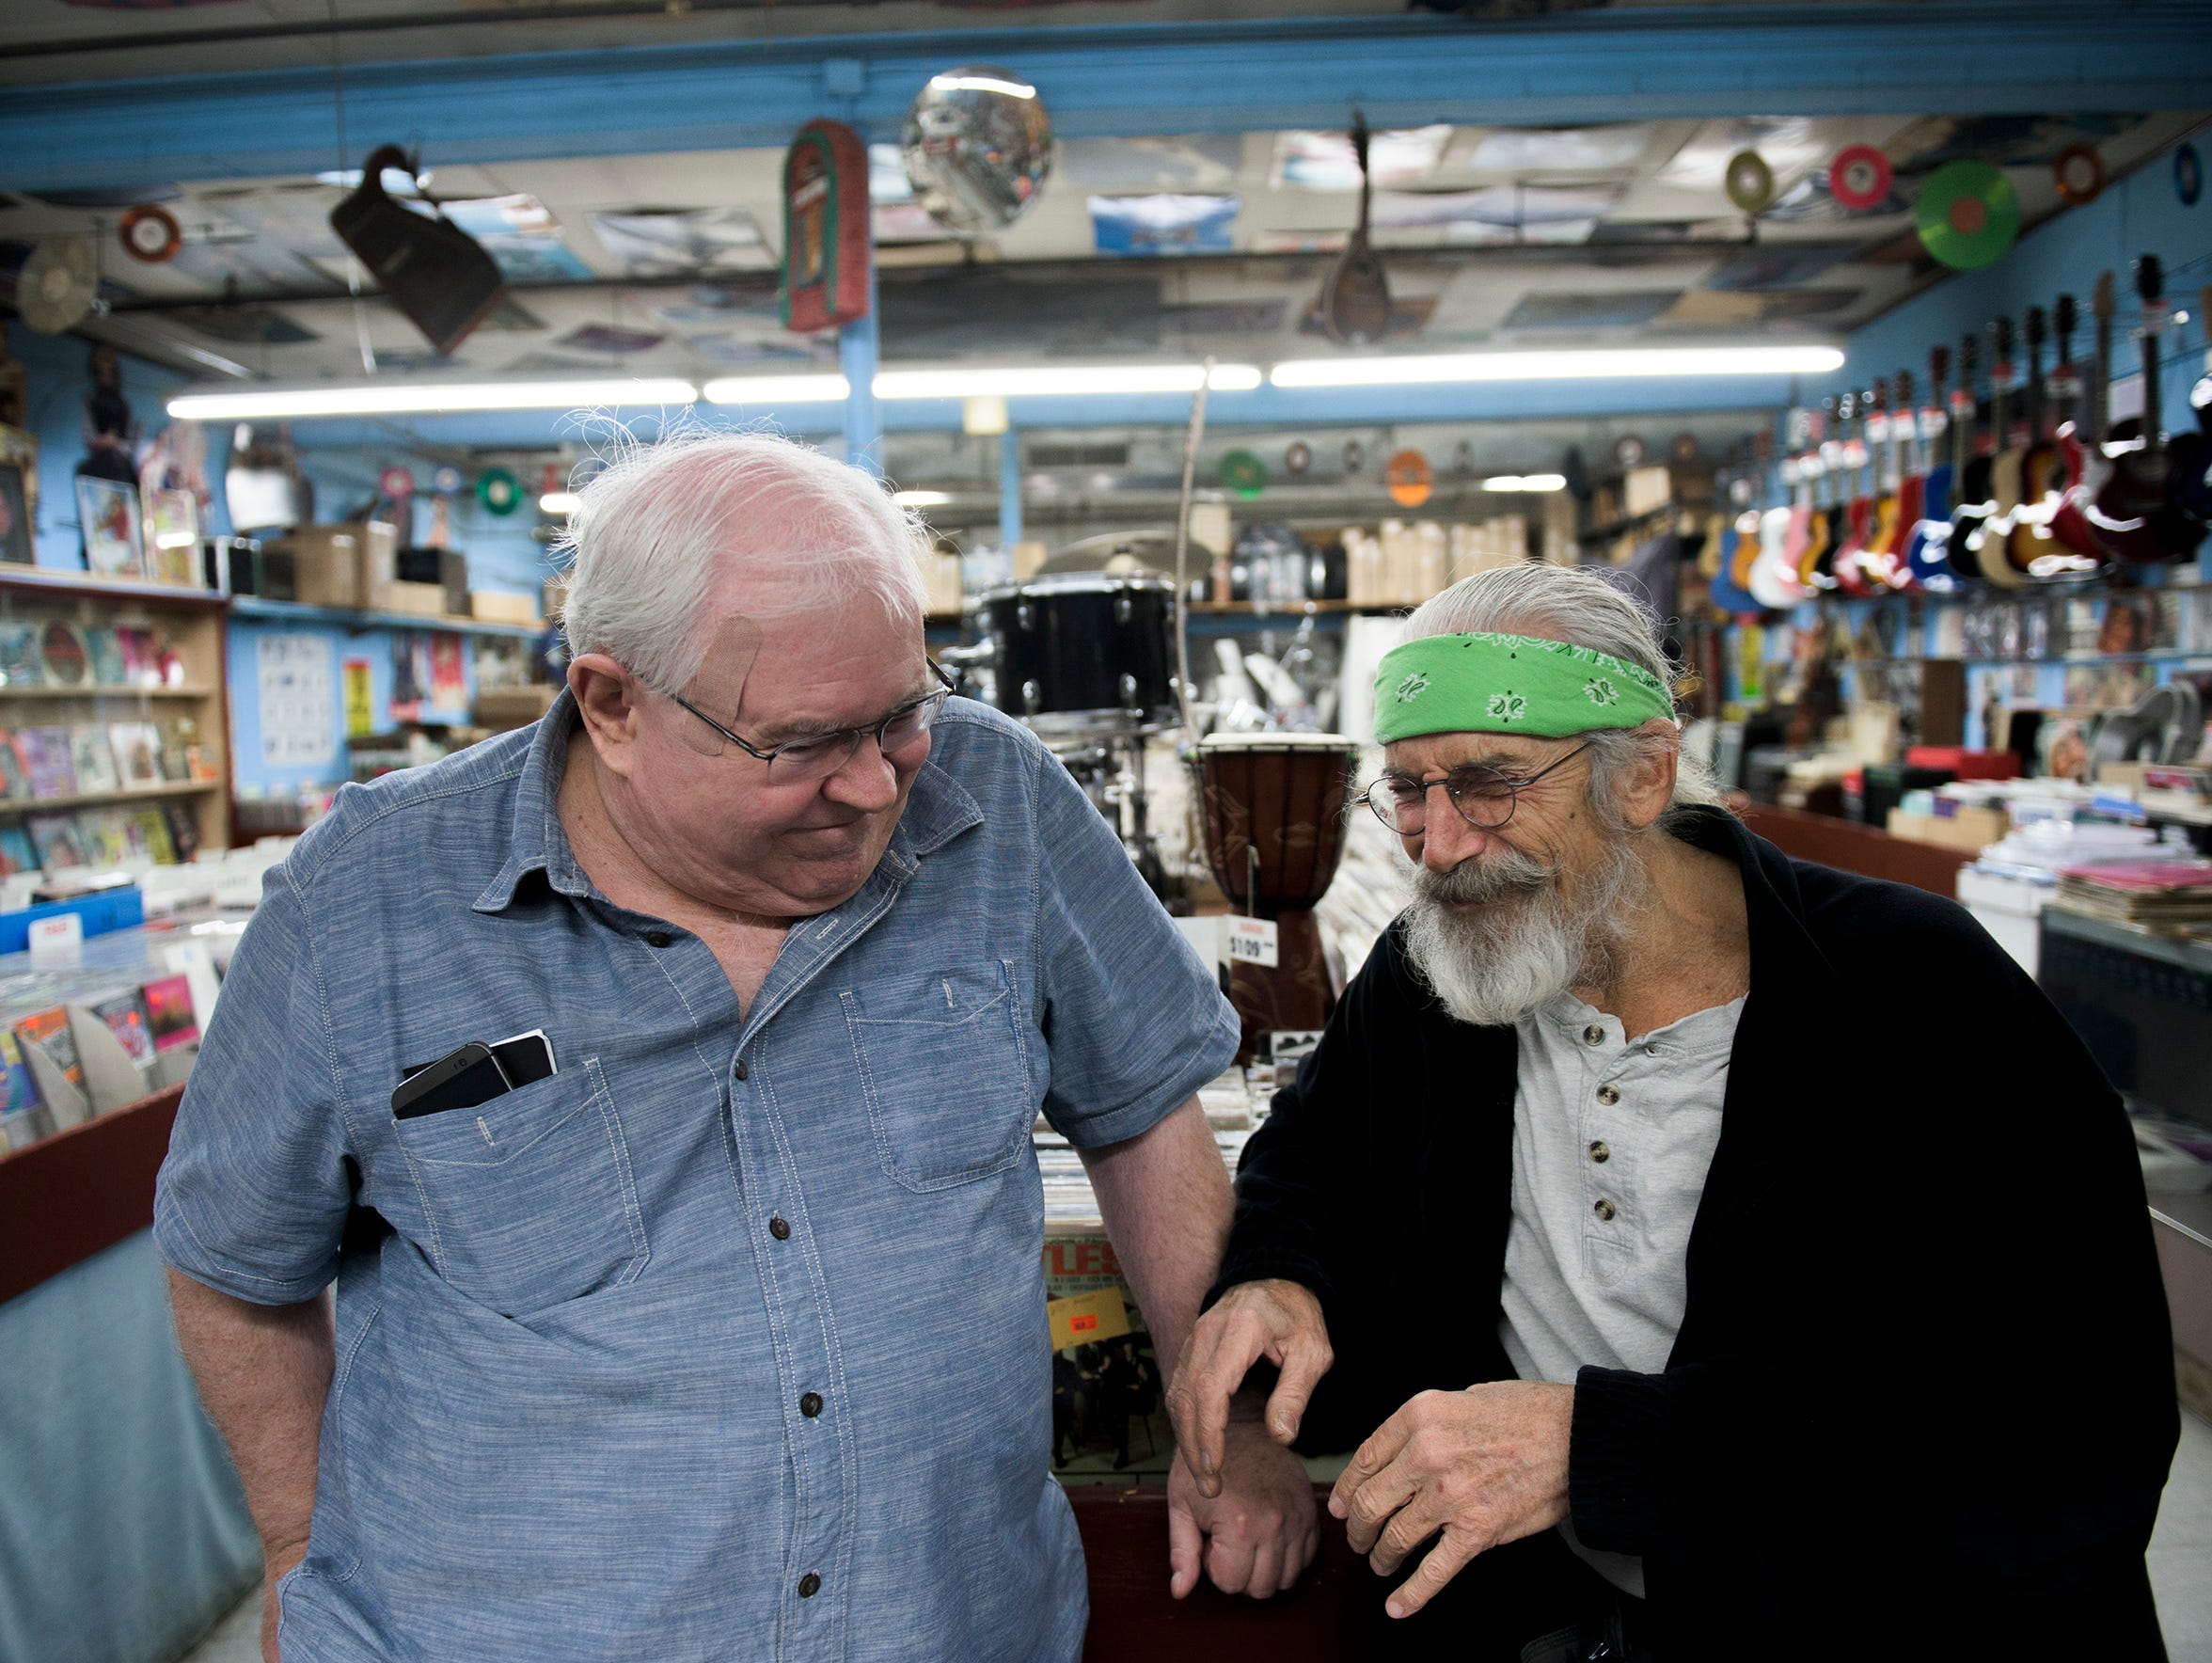 Owner Joe DiPietro, right, and long-time friend Bill Tracy share a laugh inside the Record Store at the Berlin Farmers Market. Tracy put together a photo book depicting the last few years inside the shop as a gift to his friend.